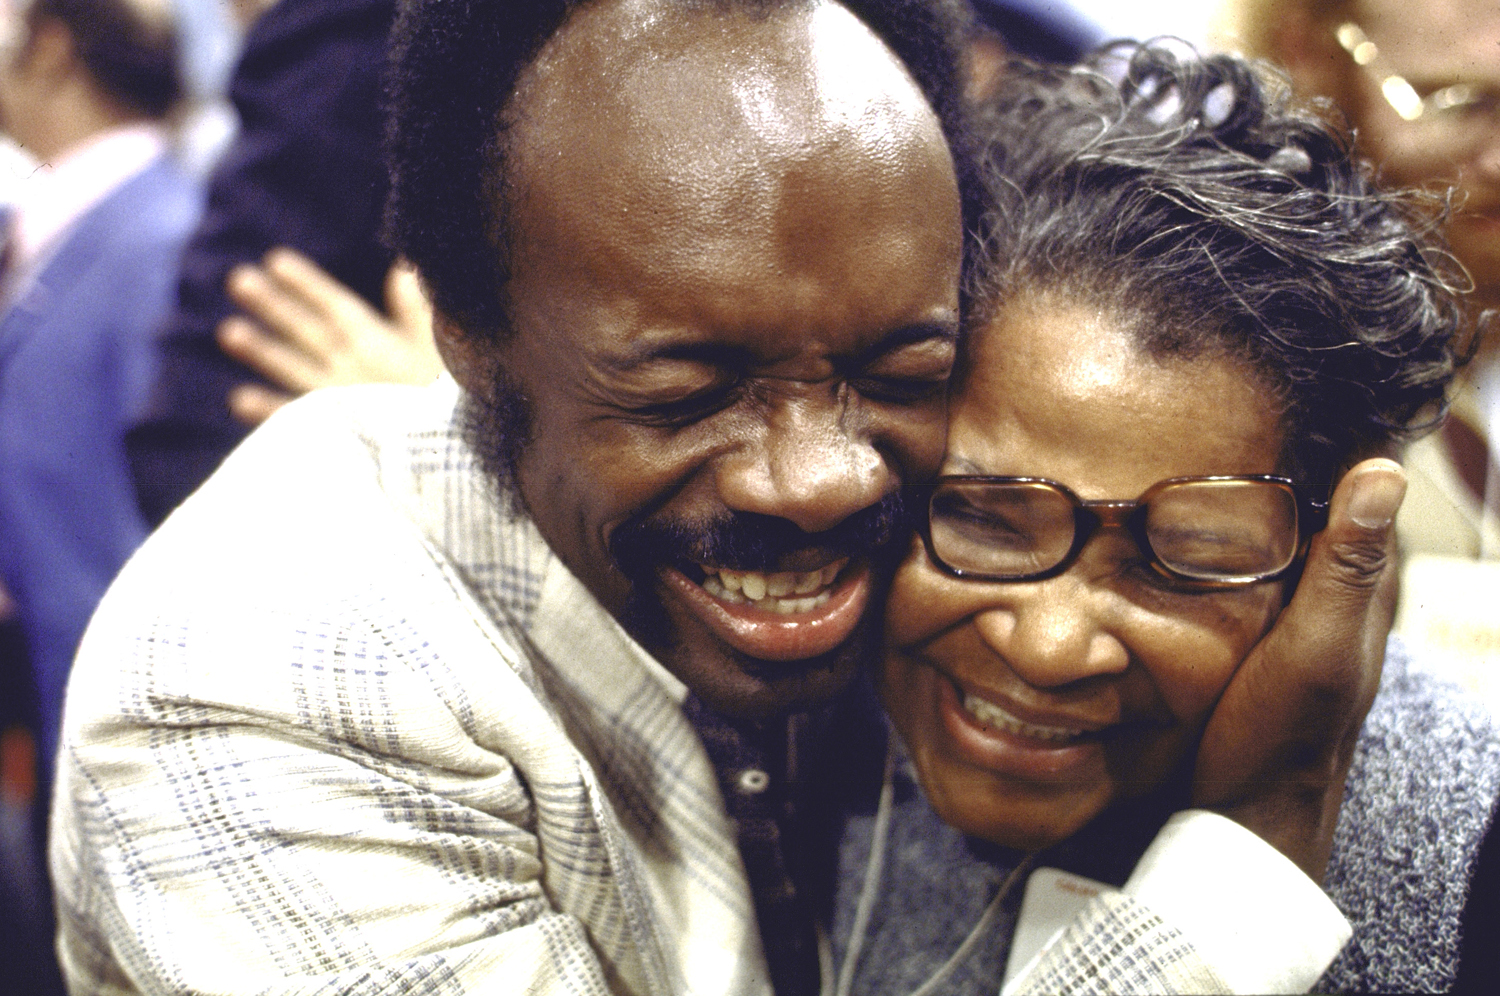 George McGovern delegation co-chair Willie Brown, Jr.—later the powerful, long-time Speaker of the California State Assembly and, eventually, the mayor of San Francisco—embraces an unidentified woman during the 1972 Democratic National Convention in Miami Beach. McGovern would win his party's nomination, but was crushed by Richard Nixon during the presidential election, winning only Massachusetts and the District of Columbia.